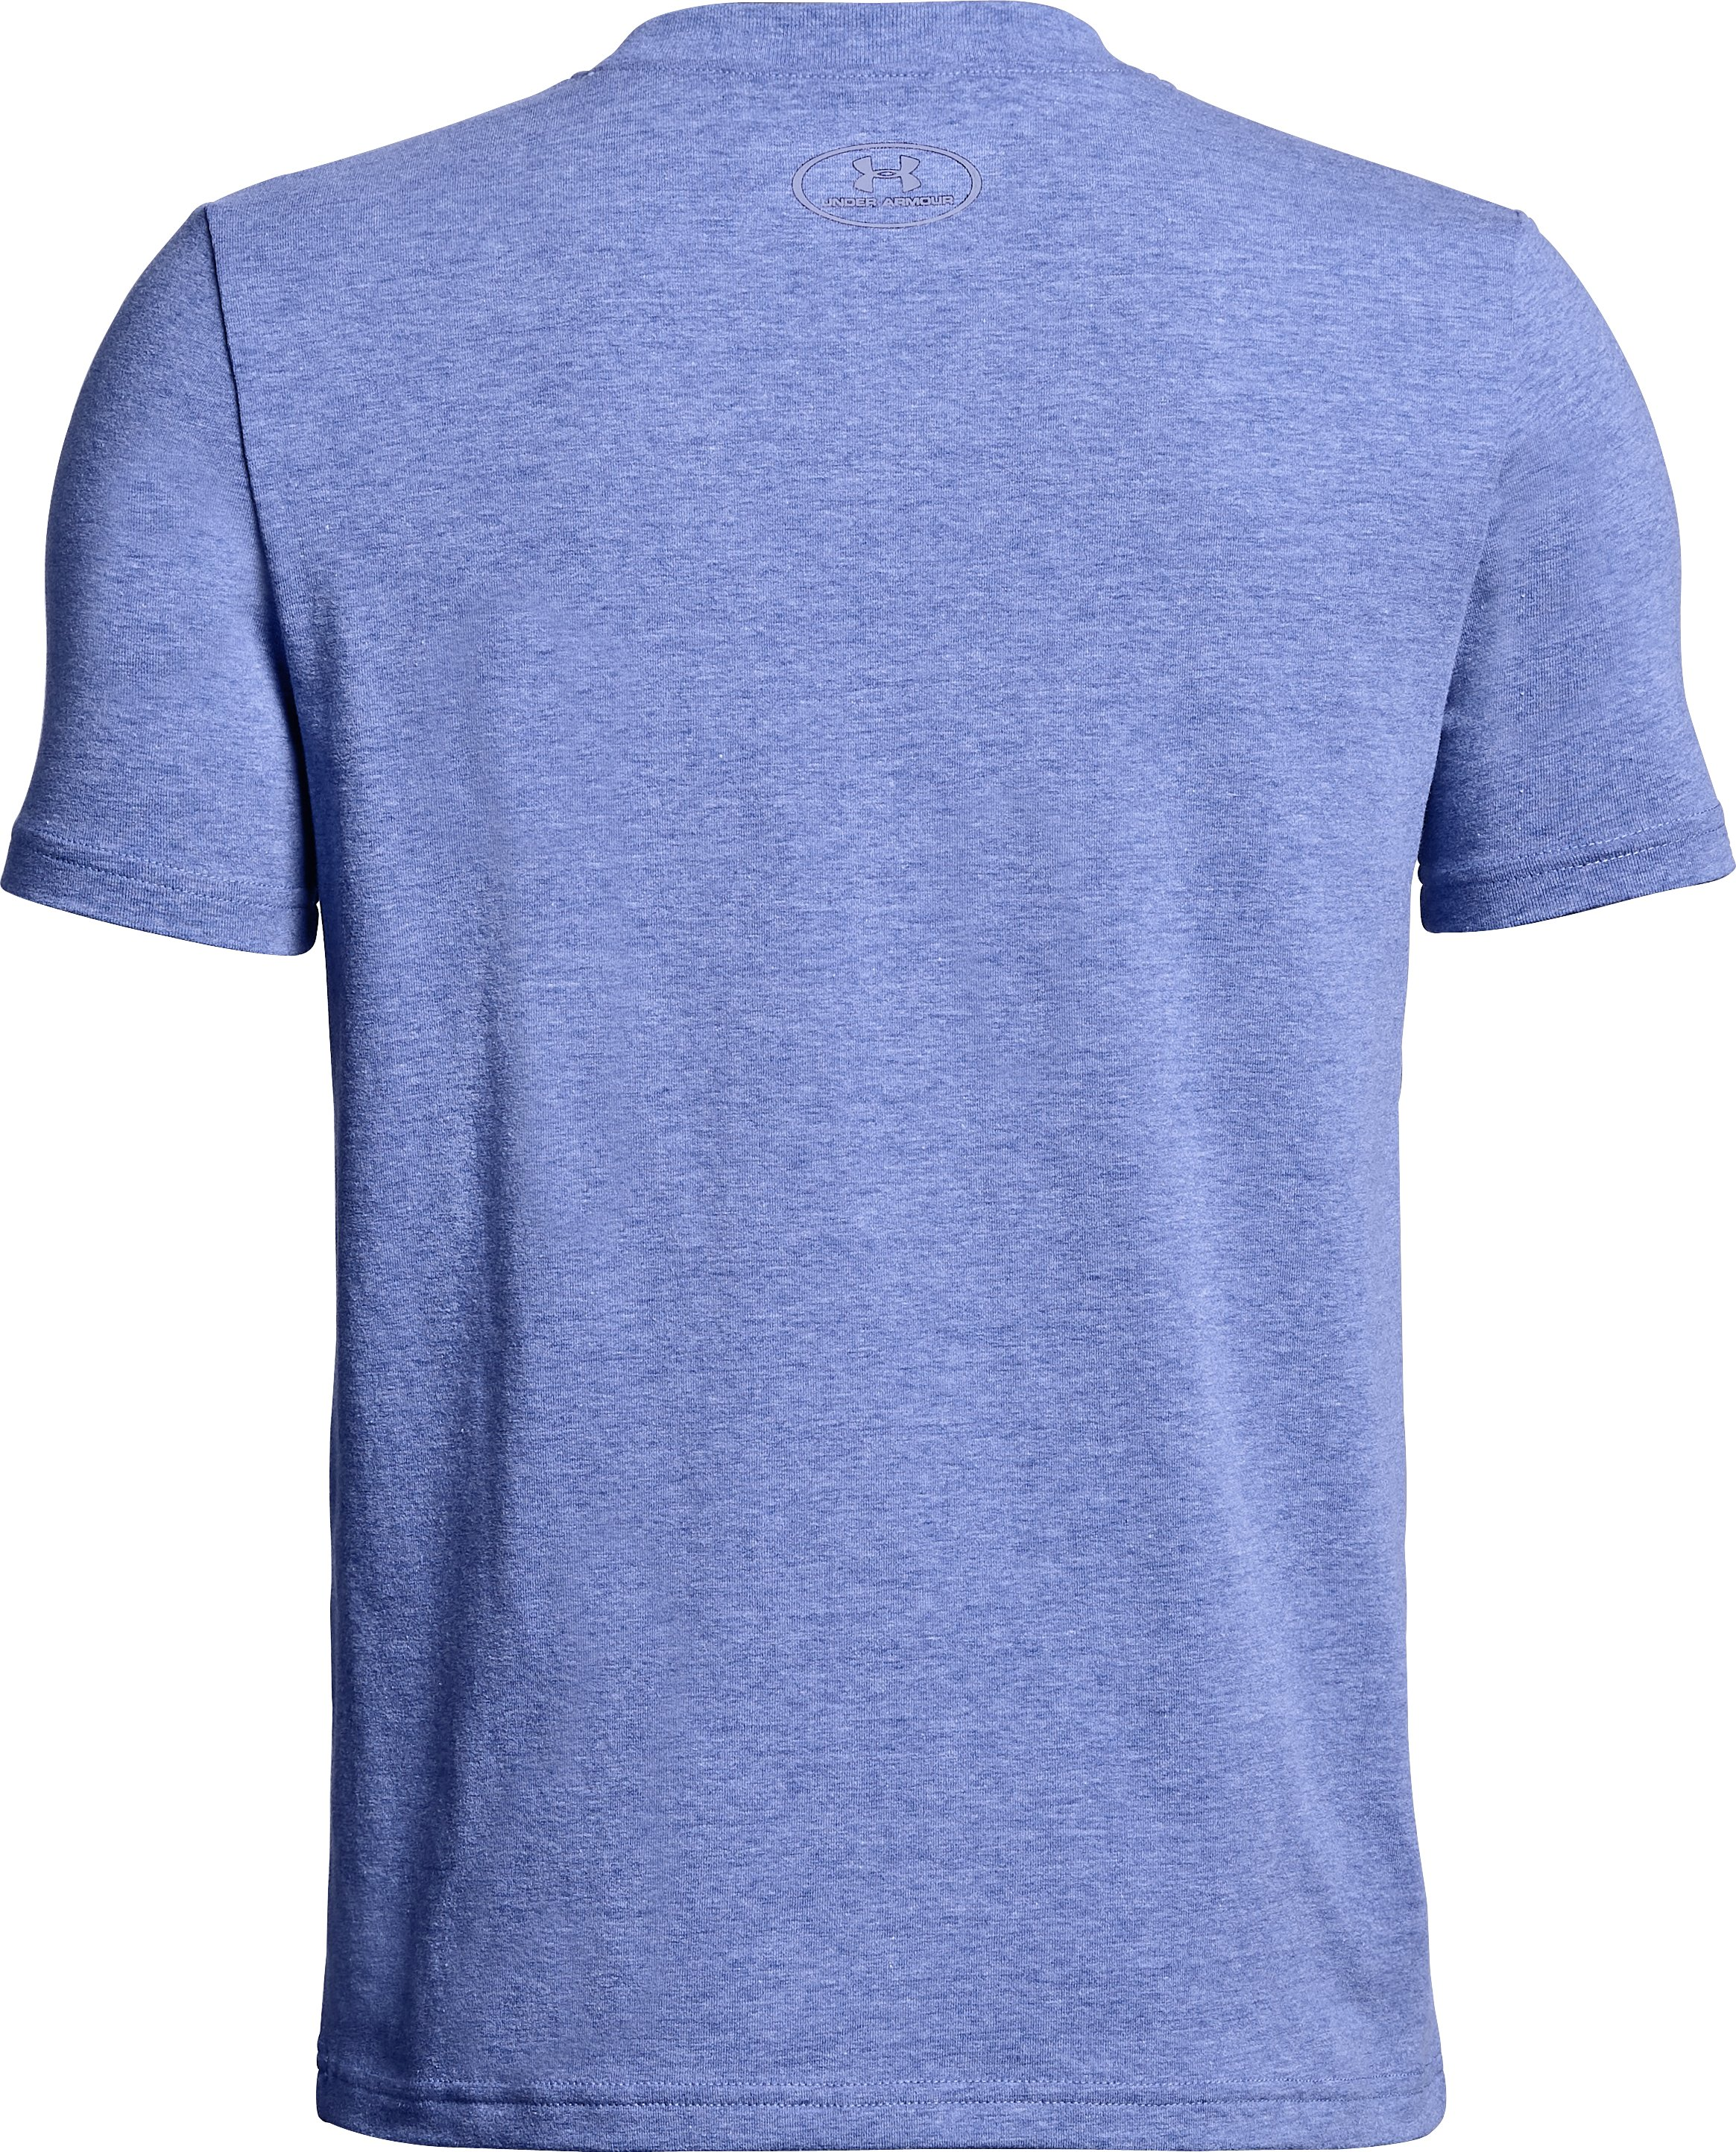 Boys' UA Bball Reflective T-Shirt, FORMATION BLUE LIGHT HEATHER, undefined